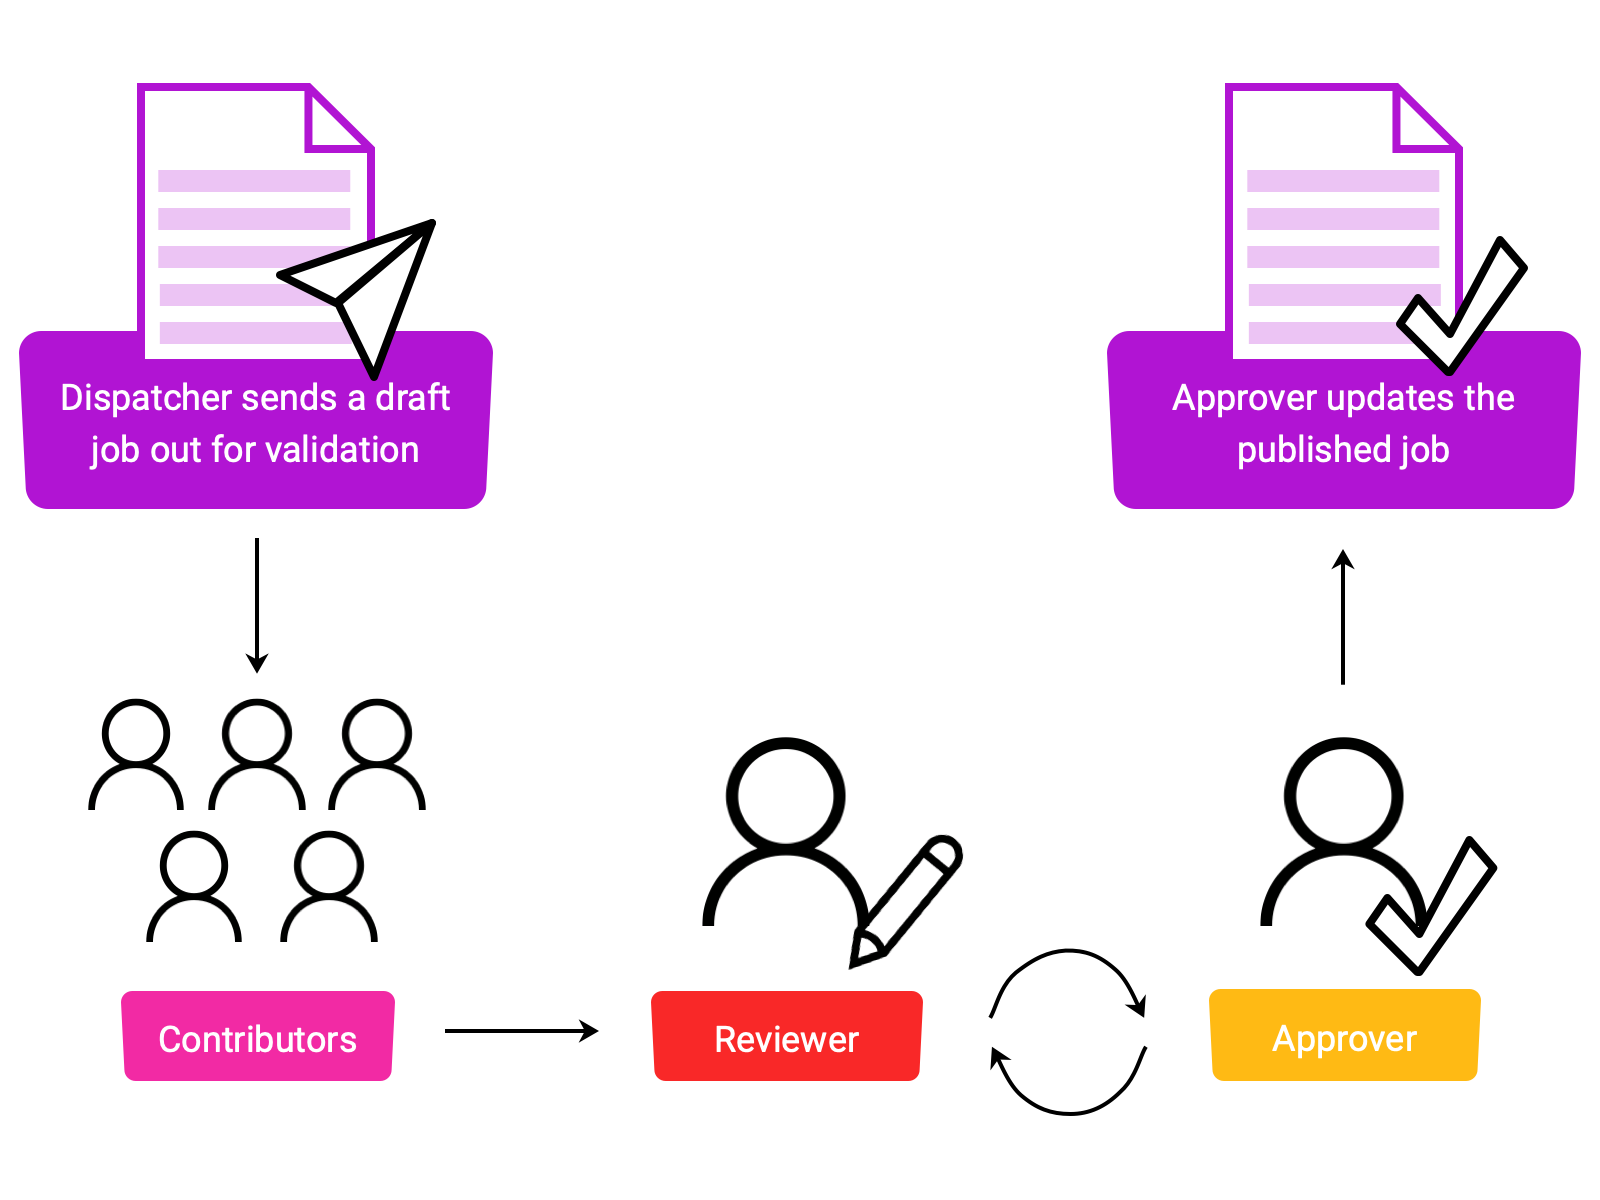 An overview of the job validation workflow